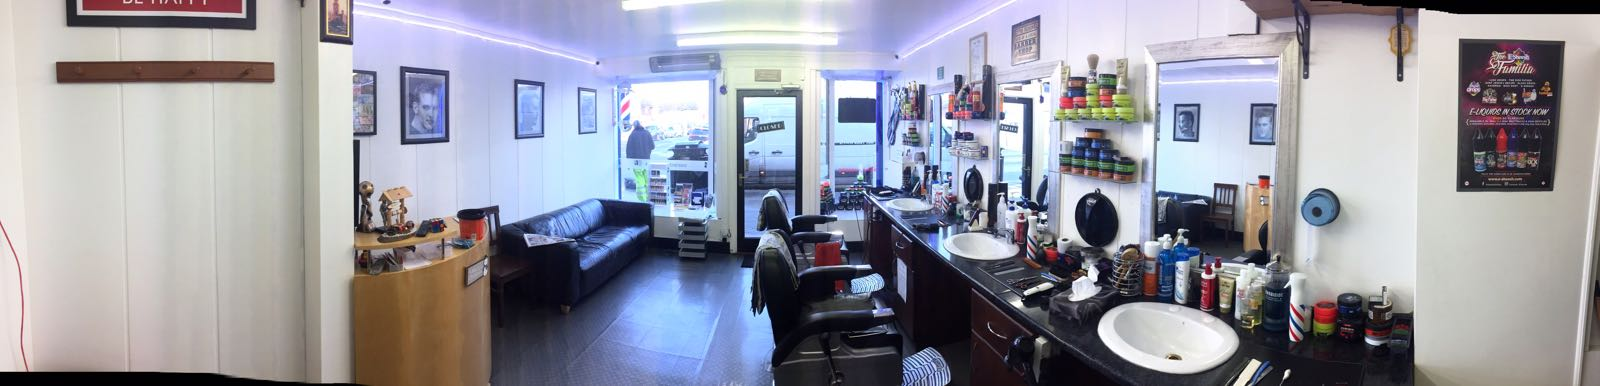 T & G Barbers  image